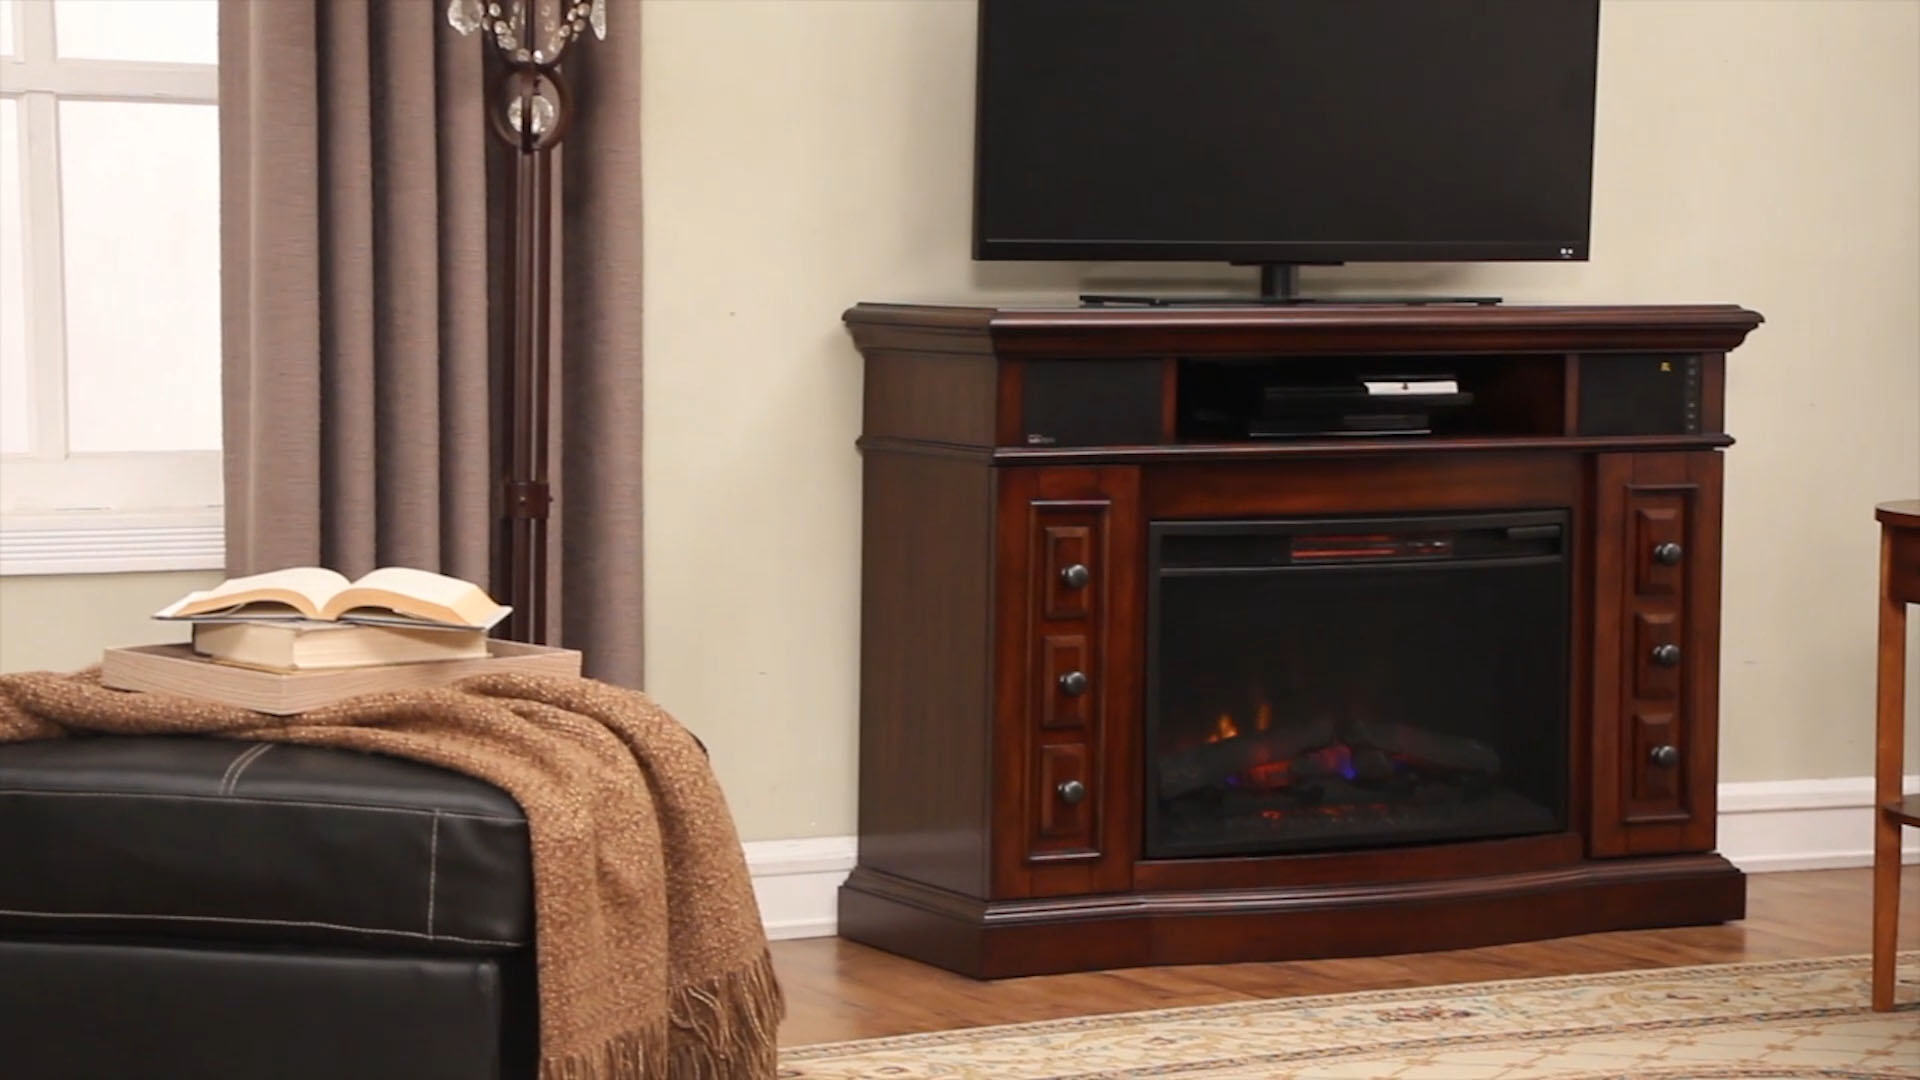 home menards spots stone fireplace very image insert electric canada innovative of decorations